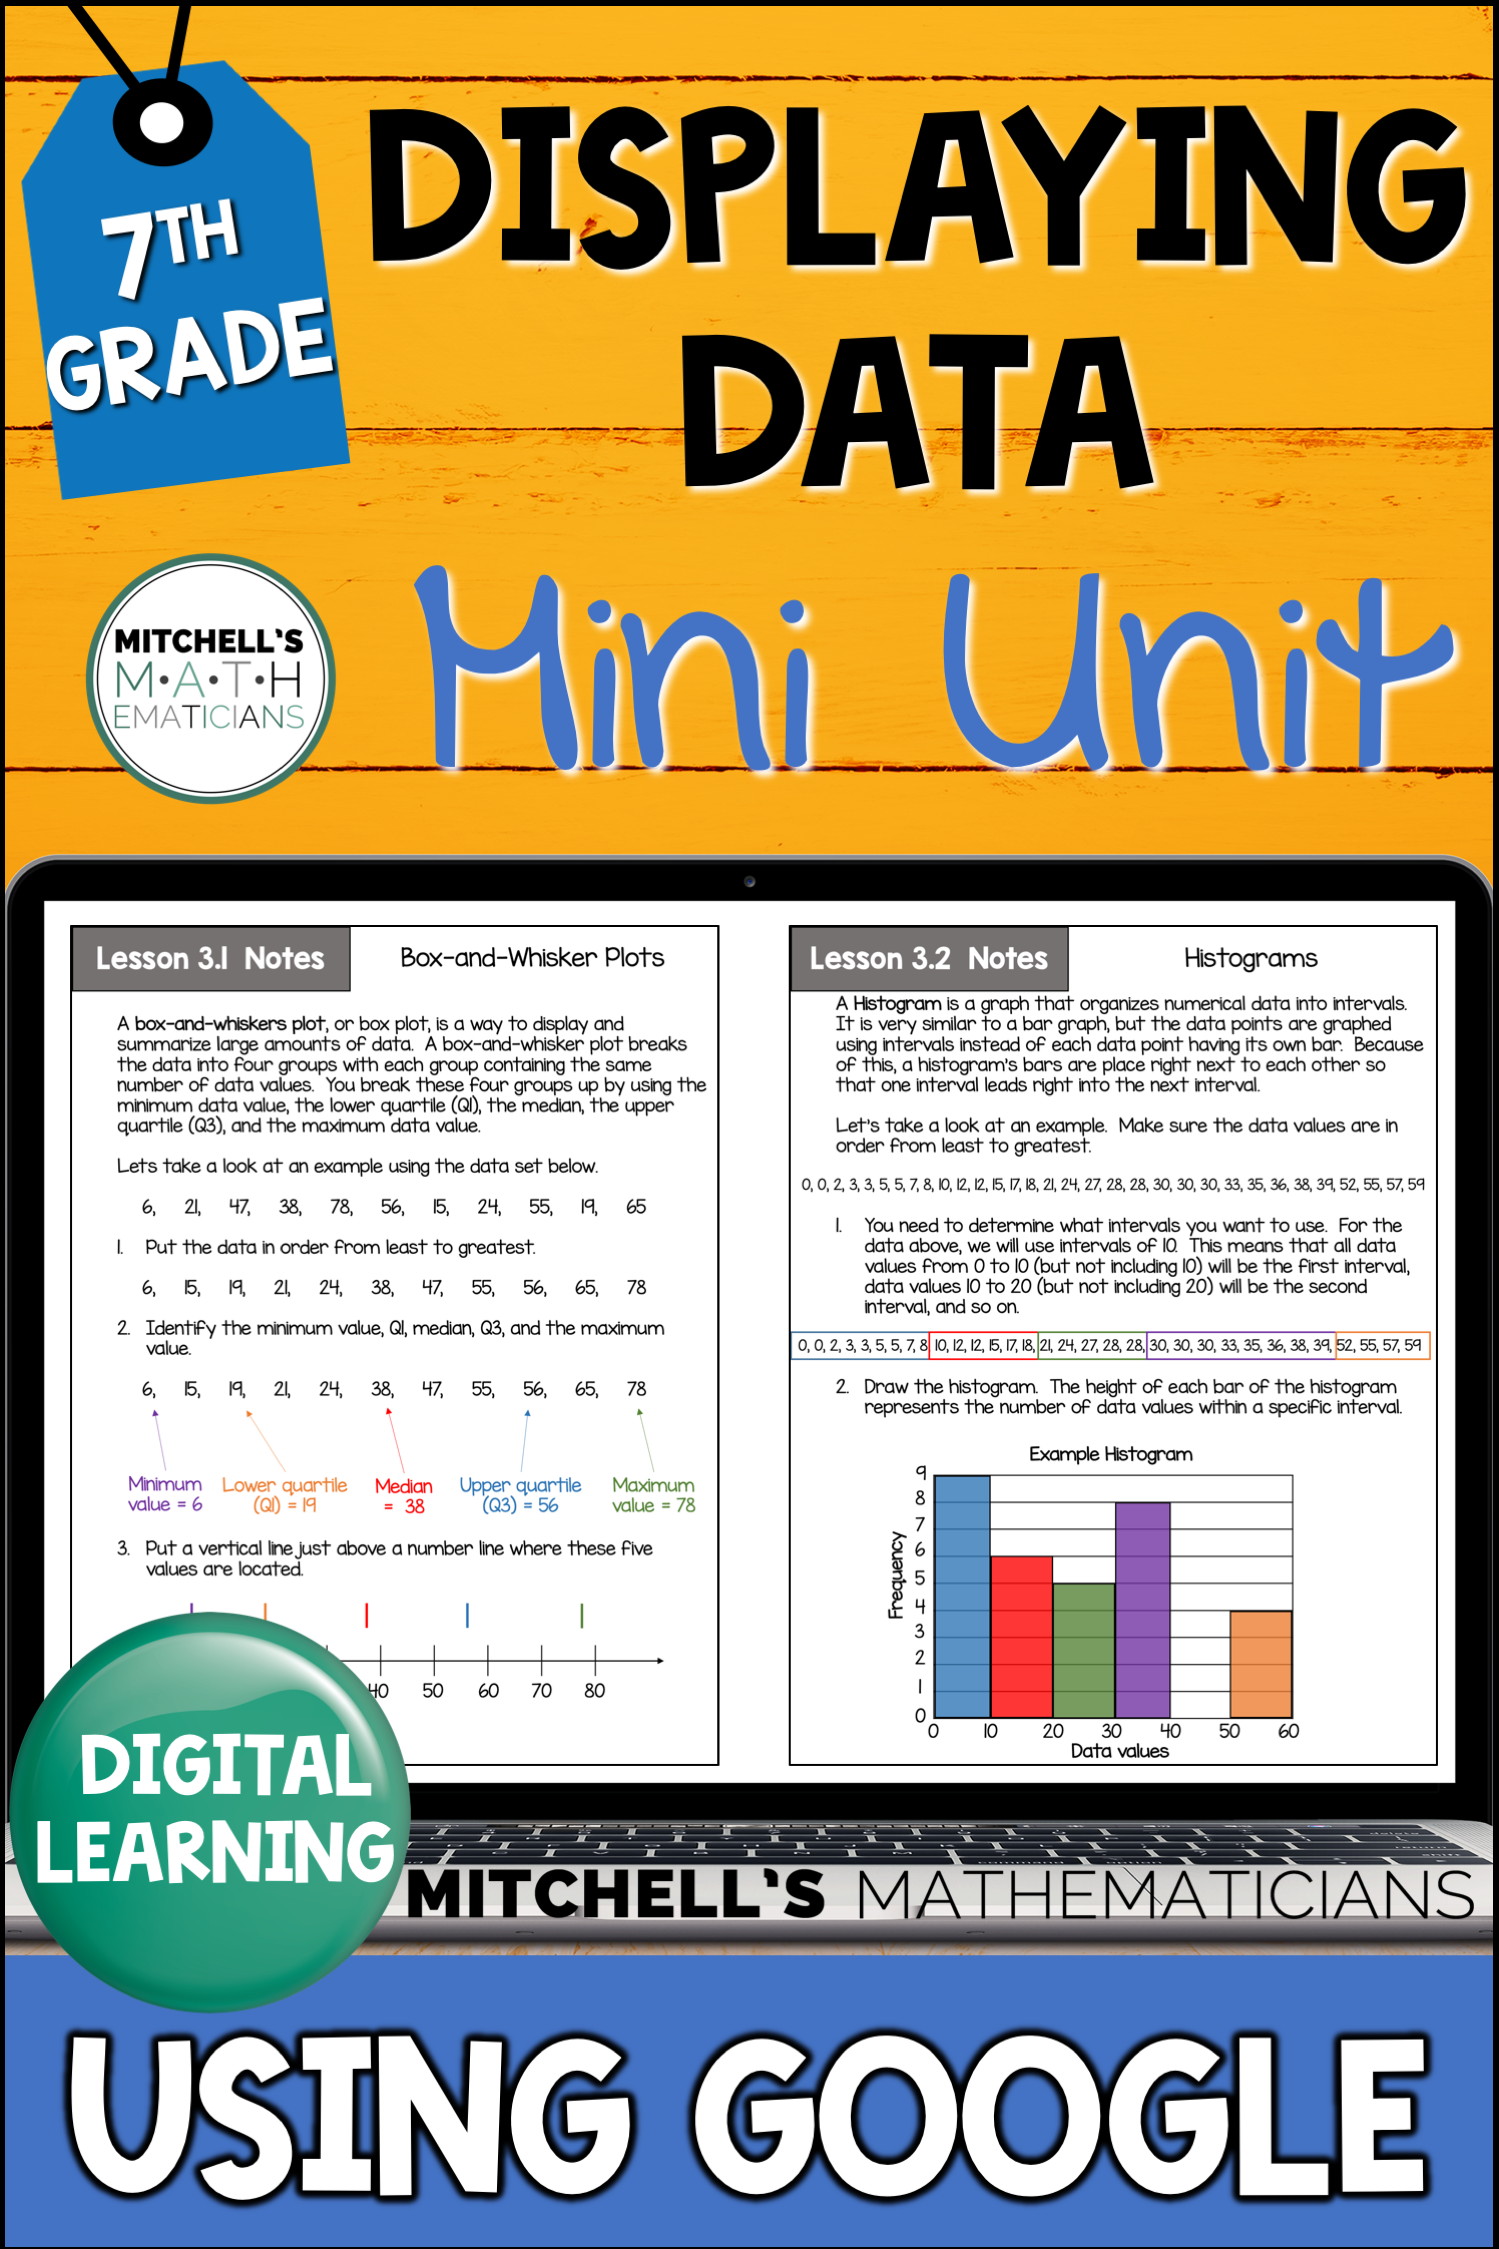 7th Grade Distance Learning Displaying Data Mini Unit In